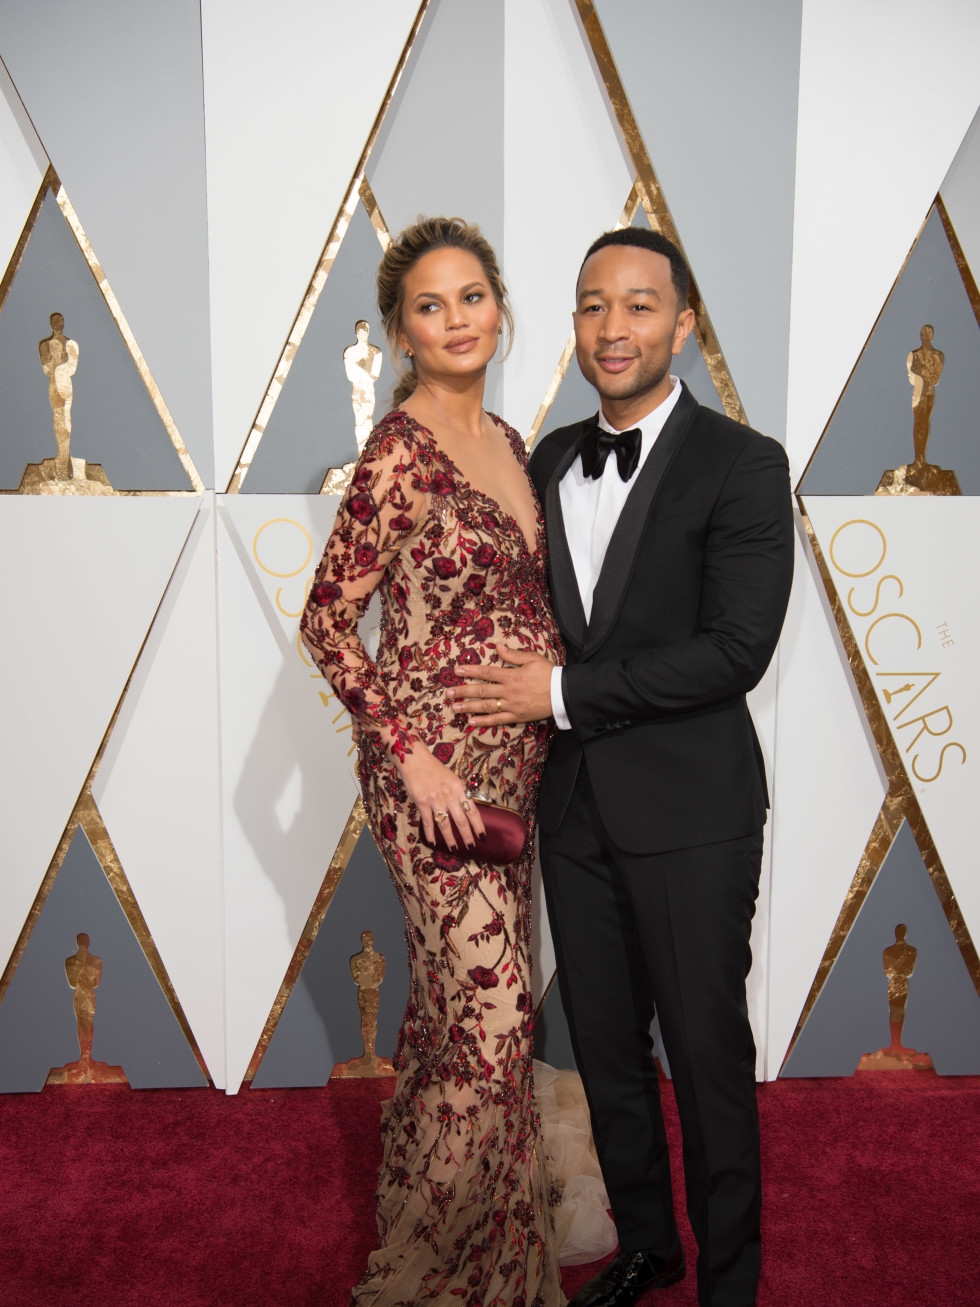 Chrissie Teagen and John Legend at Oscars